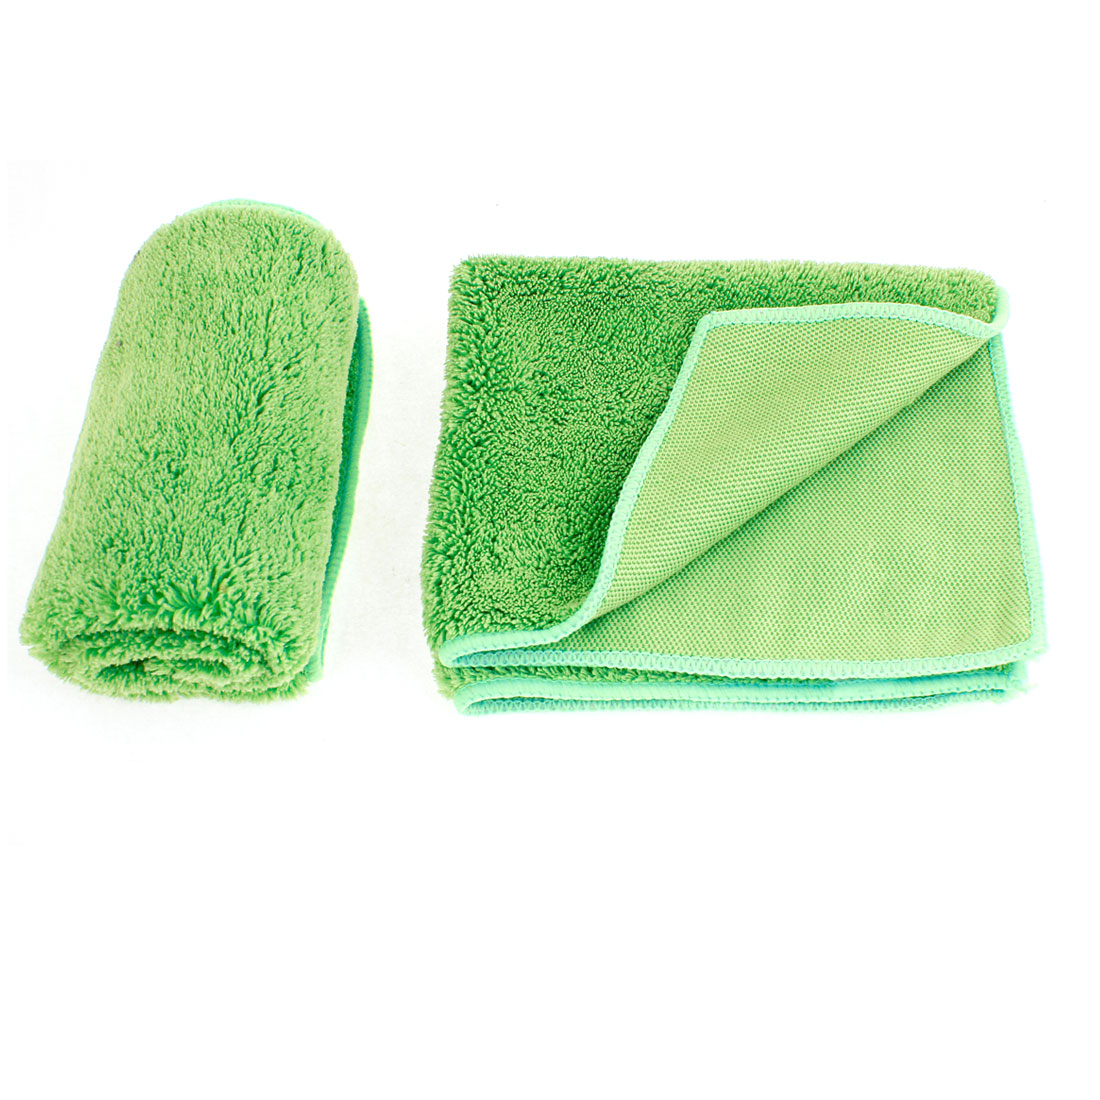 "2 x Household Light Green Microfiber Car Washing Cleaning Towel 13.8"" x 12.6"""